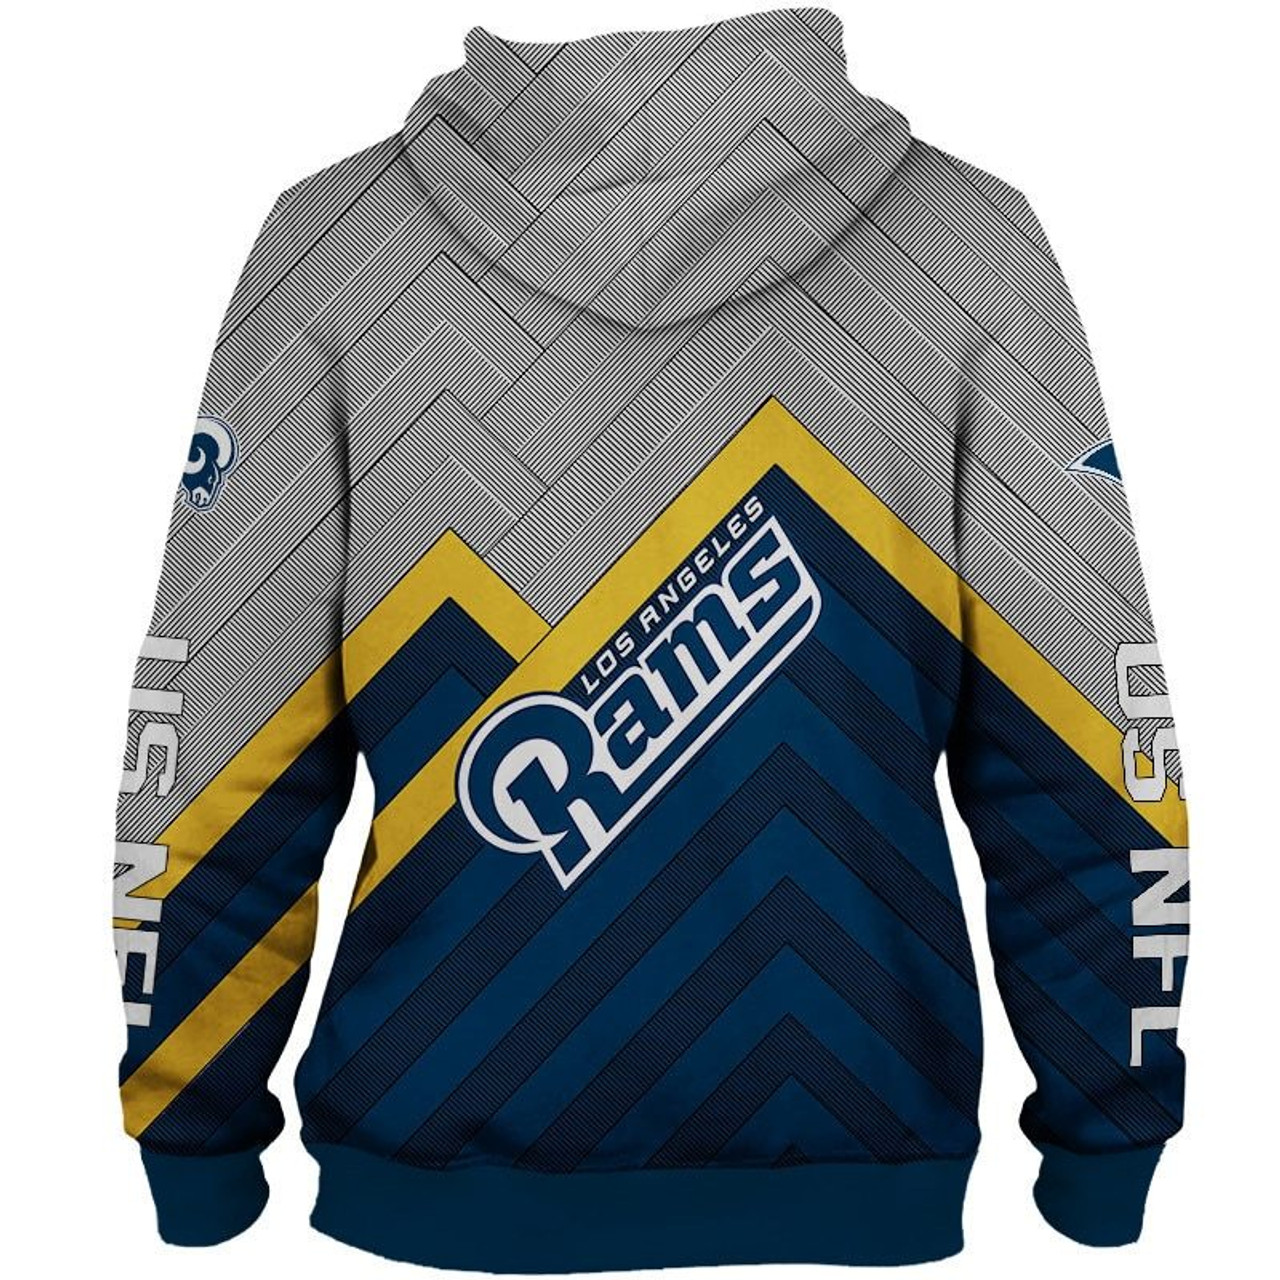 **(NEW-OFFICIAL-N.F.L.LOS-ANGELES-RAMS-ZIPPERED-HOODIES/3D-CUSTOM-RAMS-LOGOS & OFFICIAL-RAMS-TEAM-COLORS/NICE-3D-DETAILED-GRAPHIC-PRINTED-DOUBLE-SIDED/ALL-OVER-ENTIRE-HOODIE-PRINTED-DESIGN/TRENDY-WARM-PREMIUM-L.A.RAMS-TEAM-ZIPPERED-HOODIES)**